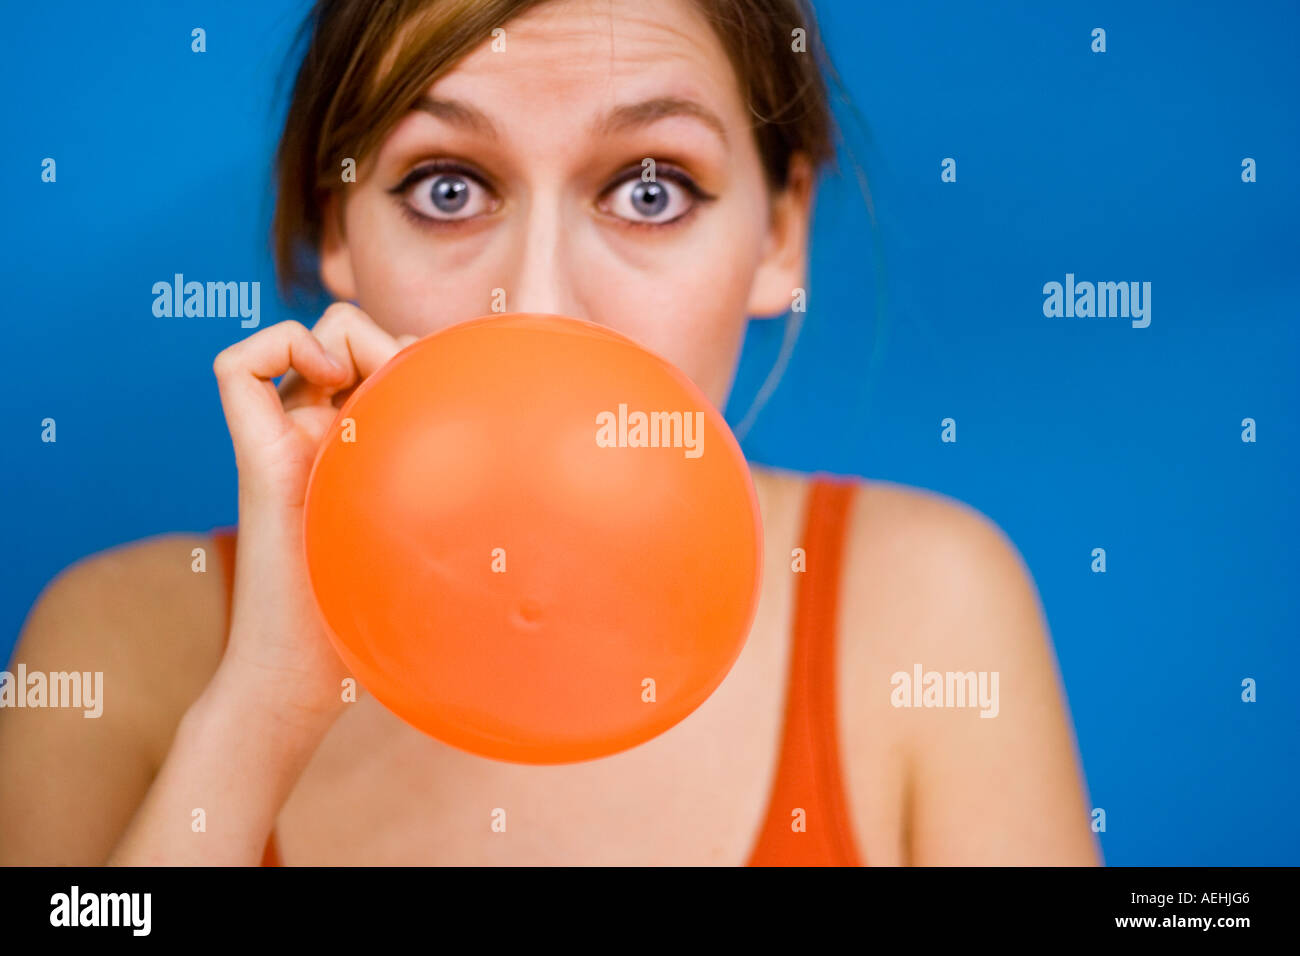 Woman blowing up baloon - Stock Image